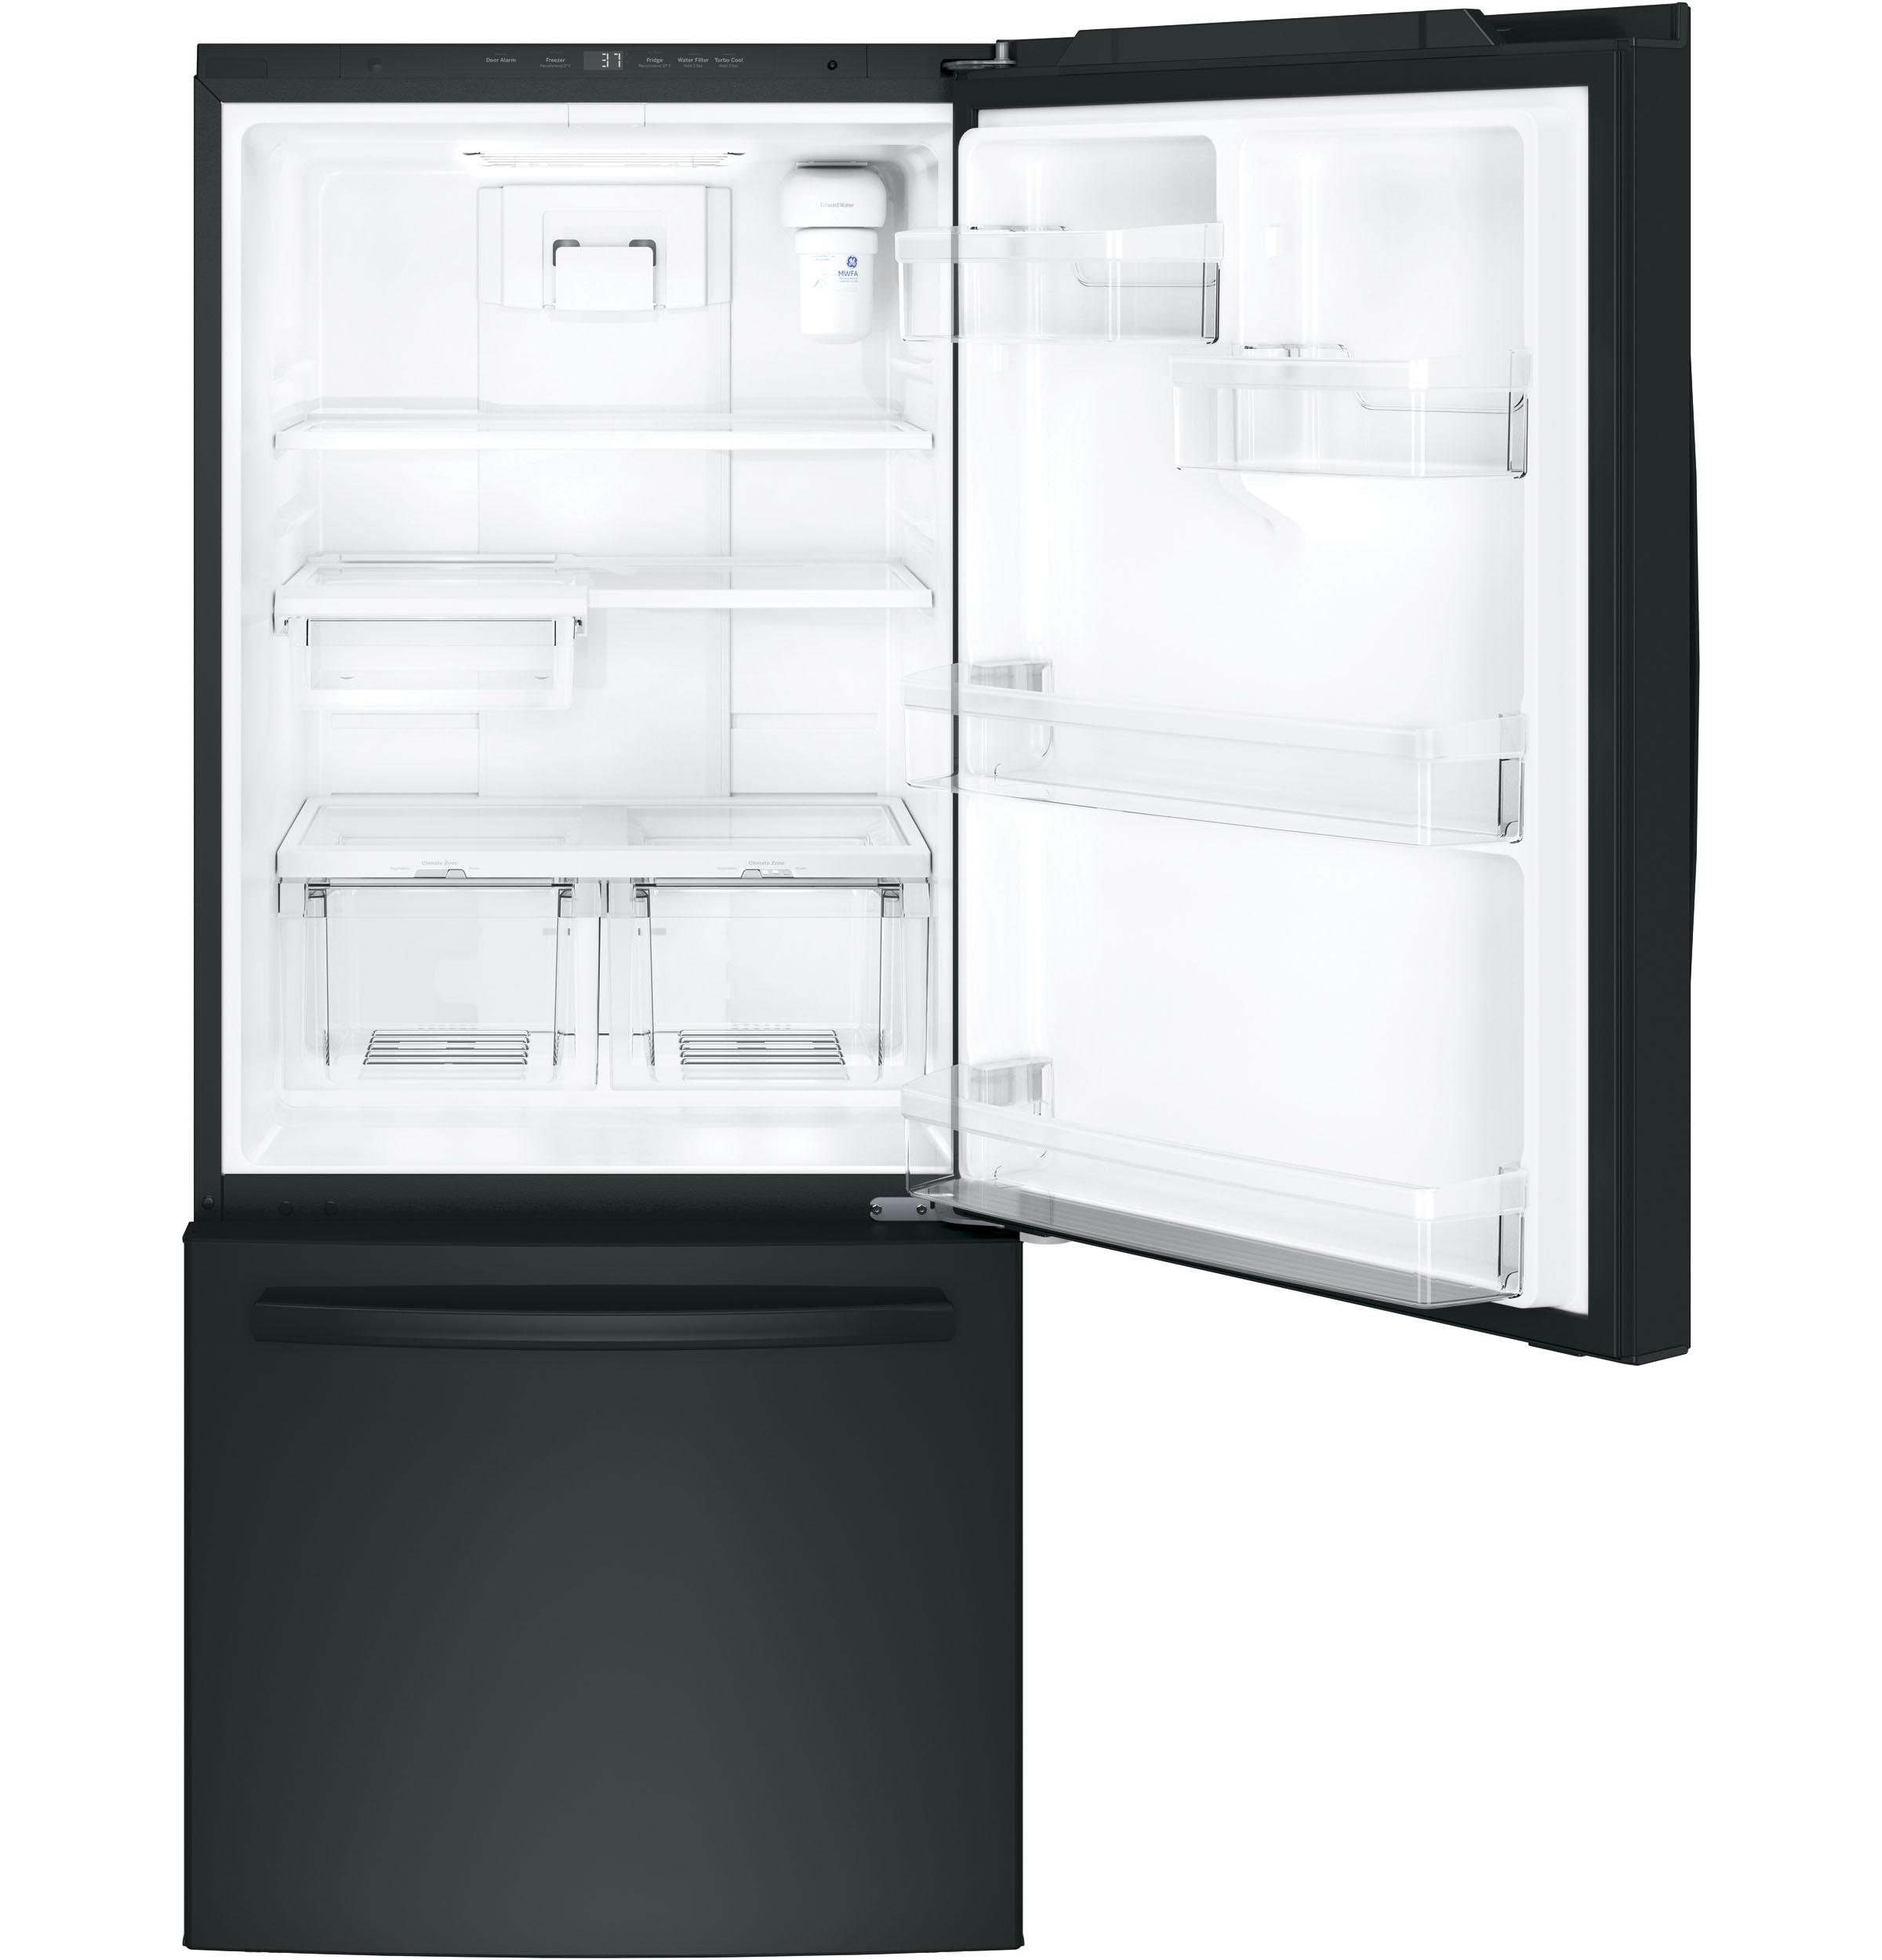 GE(R) ENERGY STAR(R) 20.9 Cu. Ft. Bottom-Freezer Refrigerator